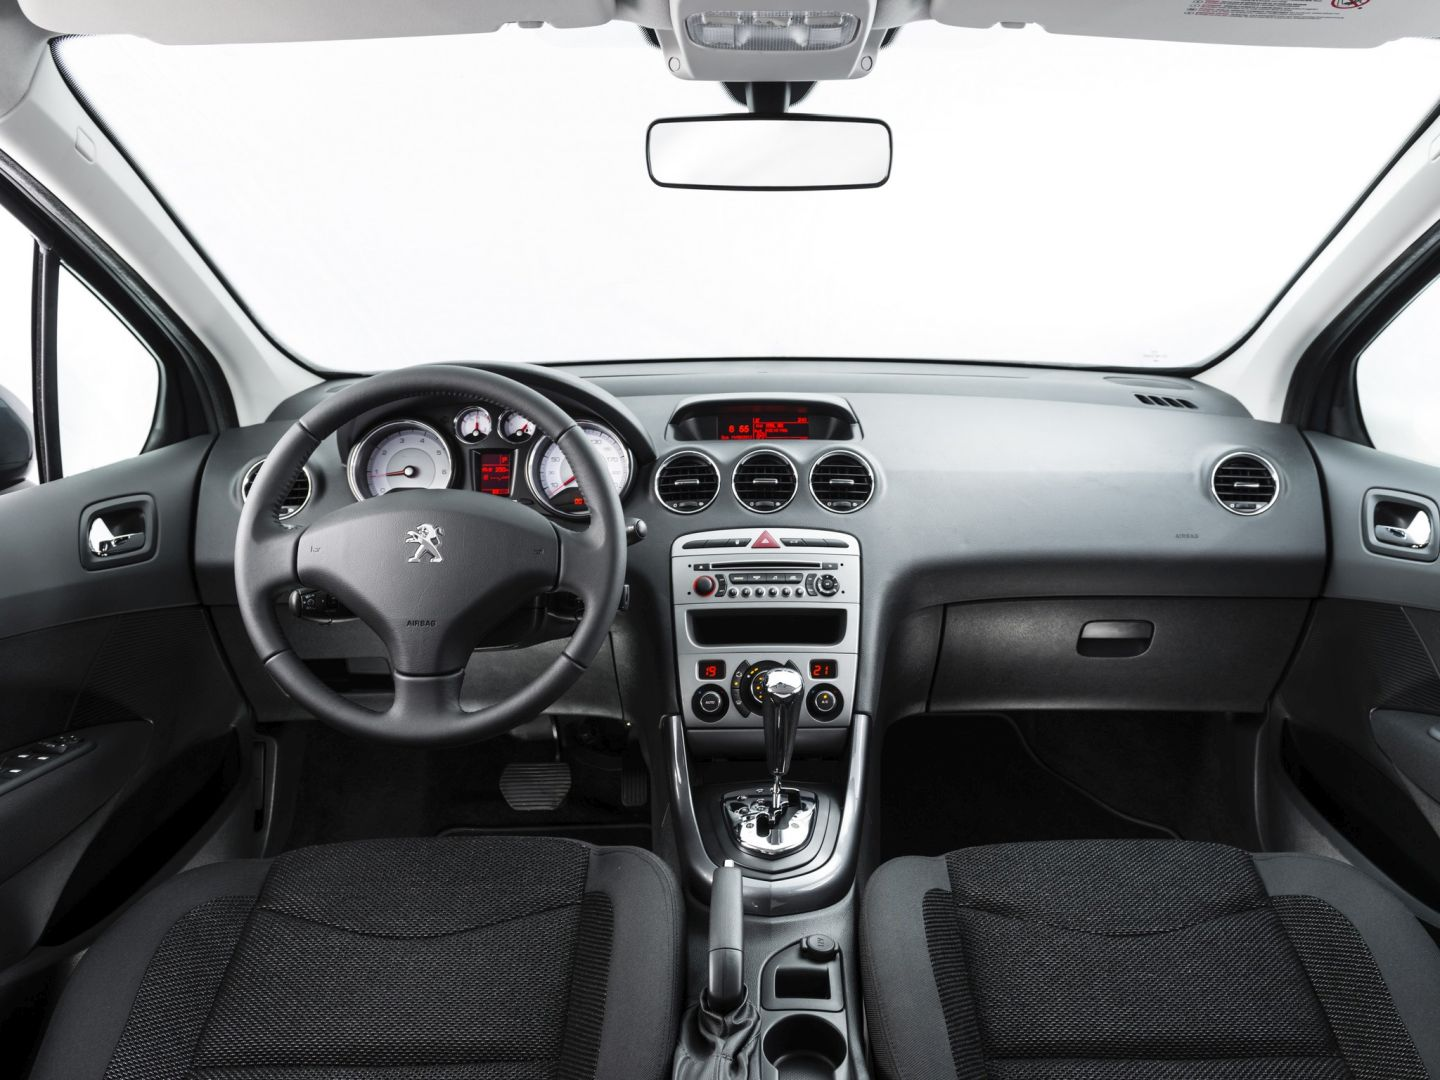 image gallery peugeot 408 2015 interior